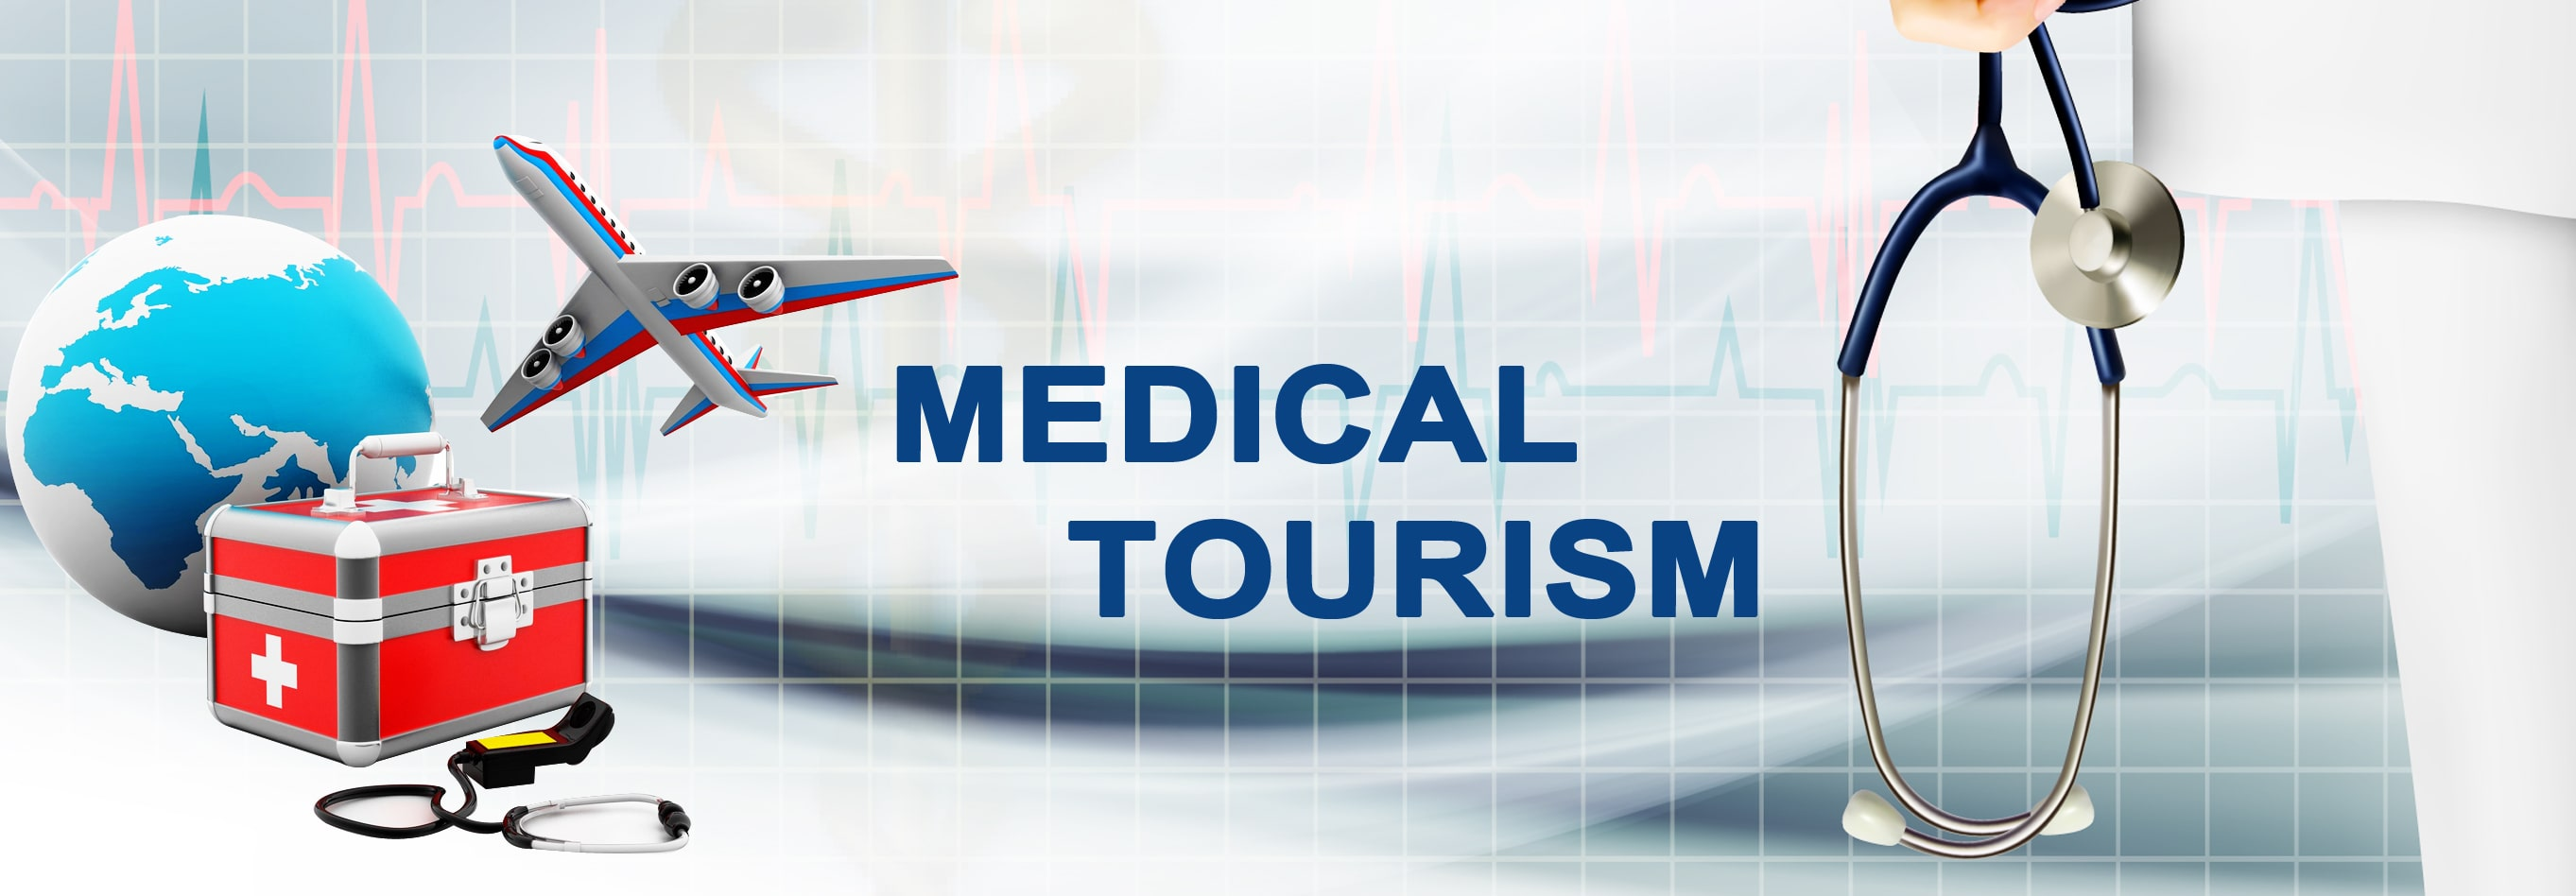 medical tourism website designer Delhi